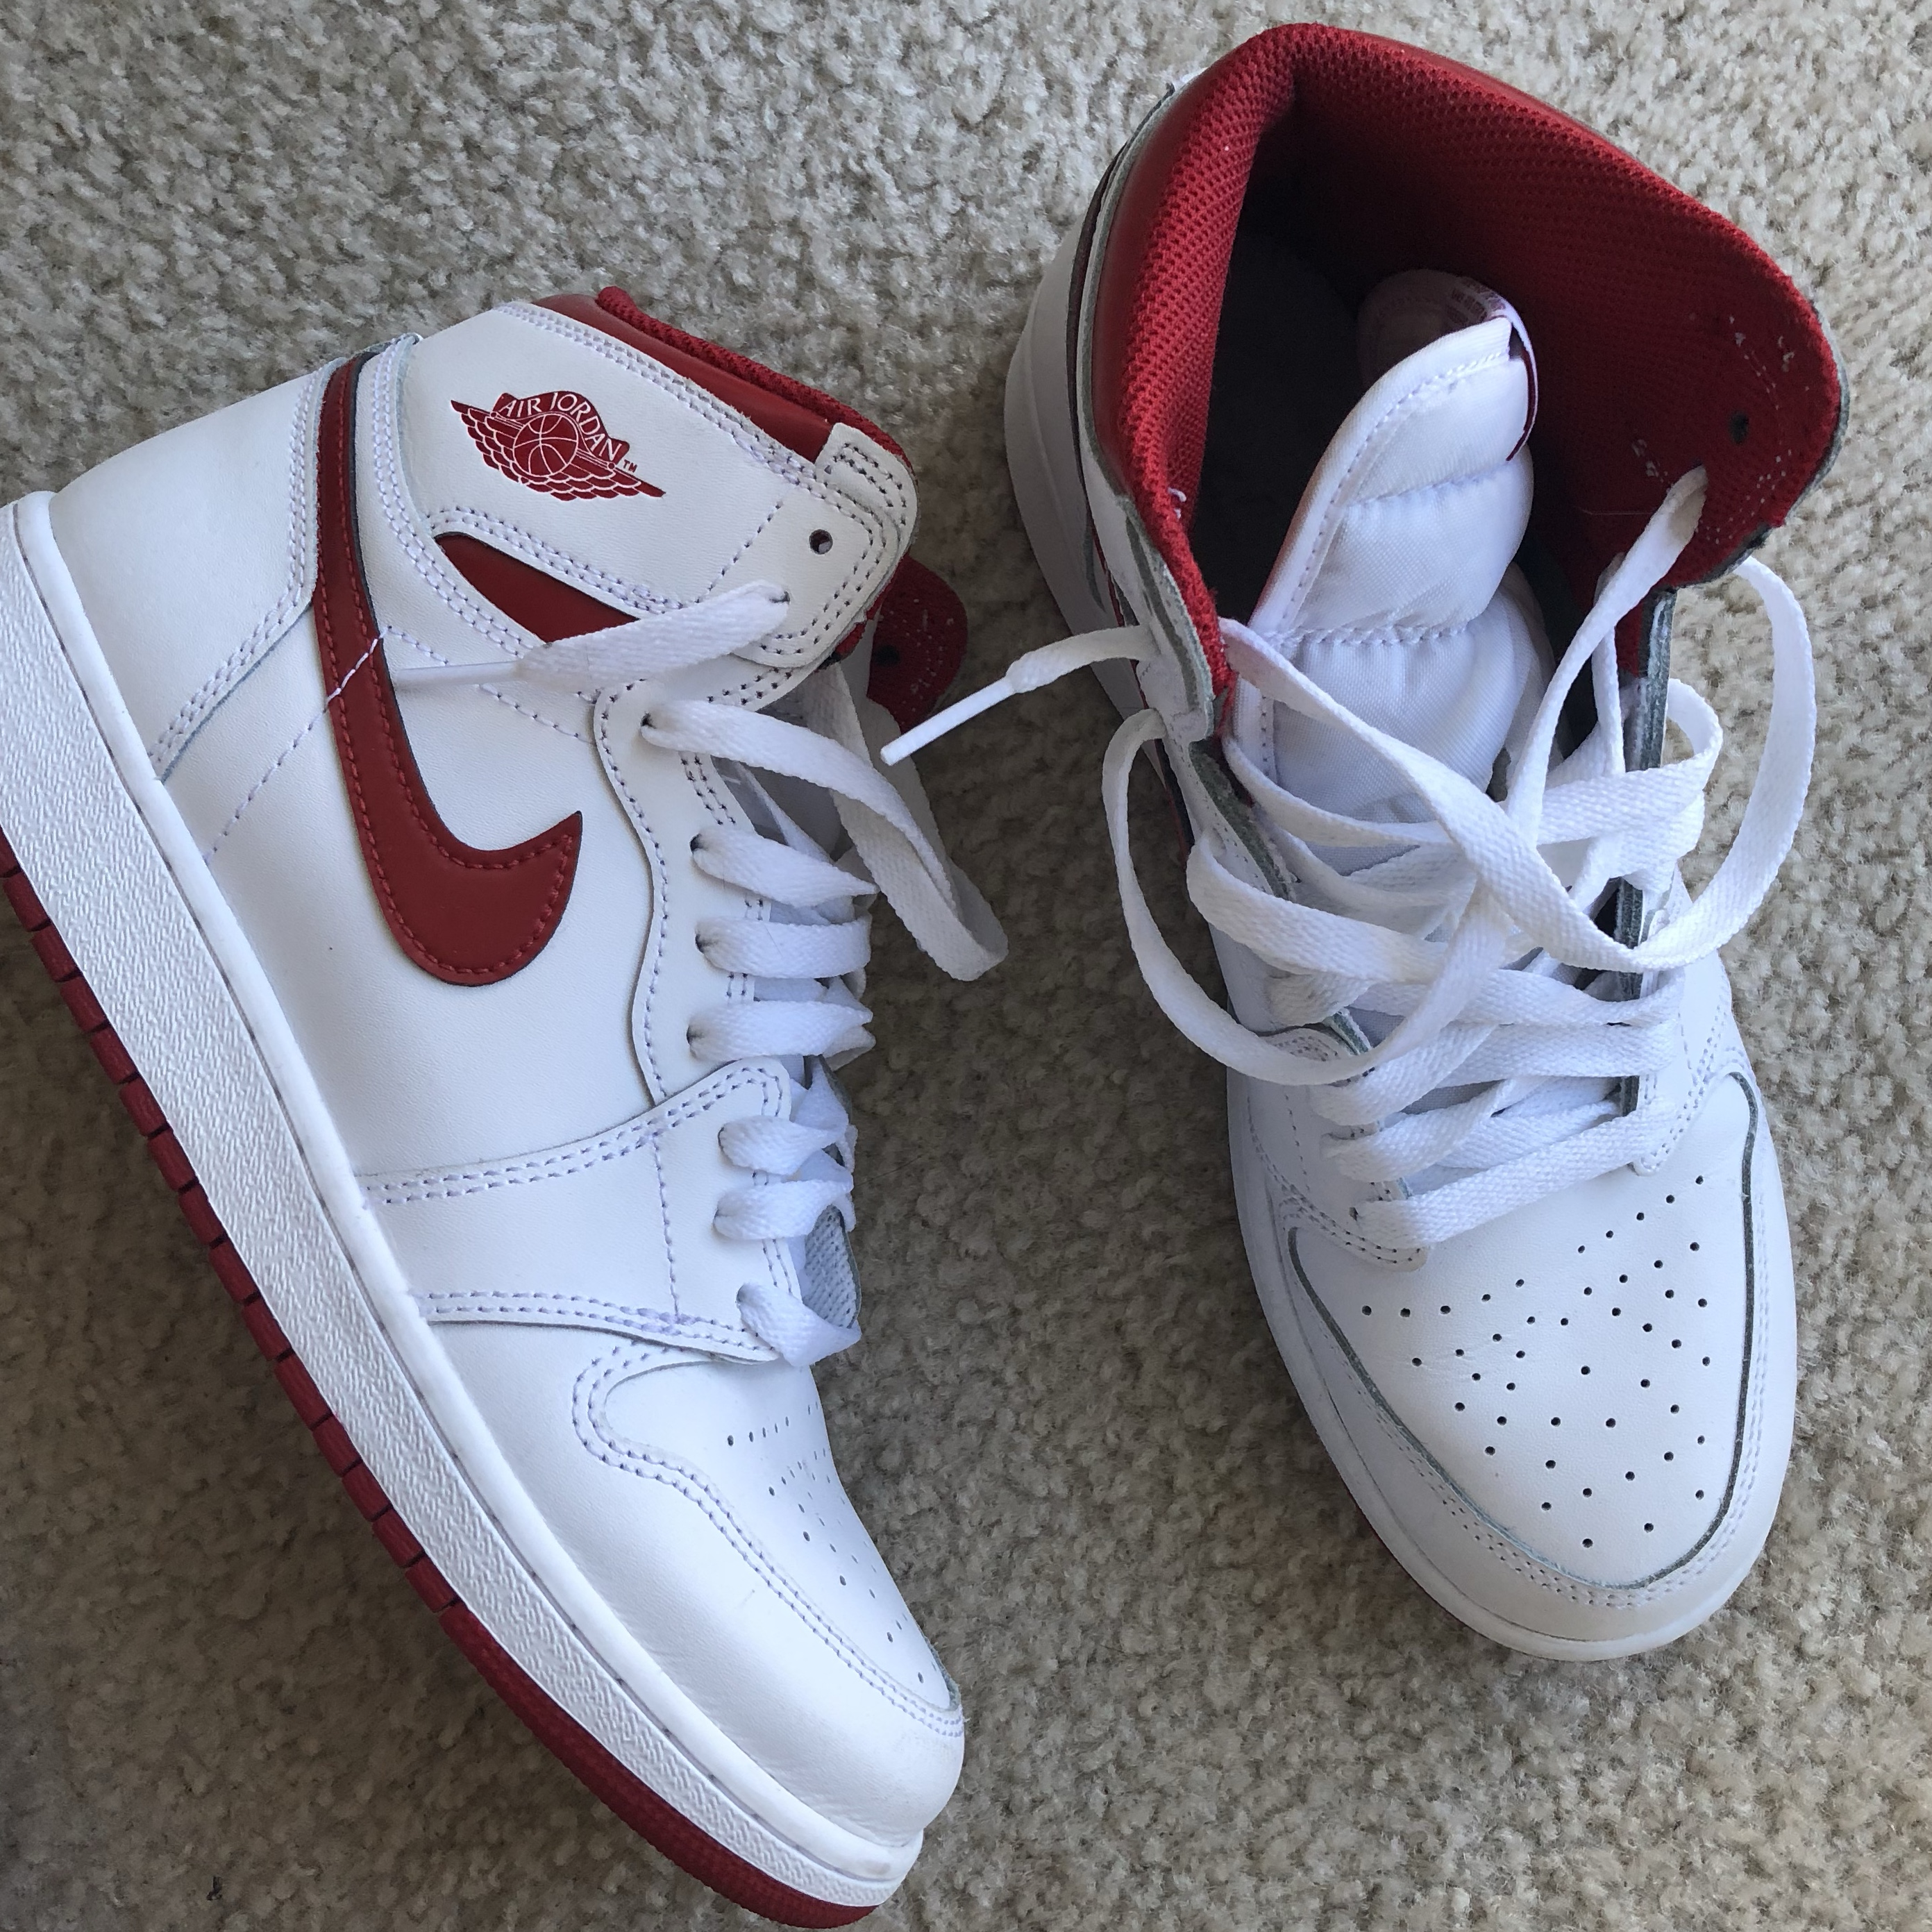 air jordan 1s, only used these once or